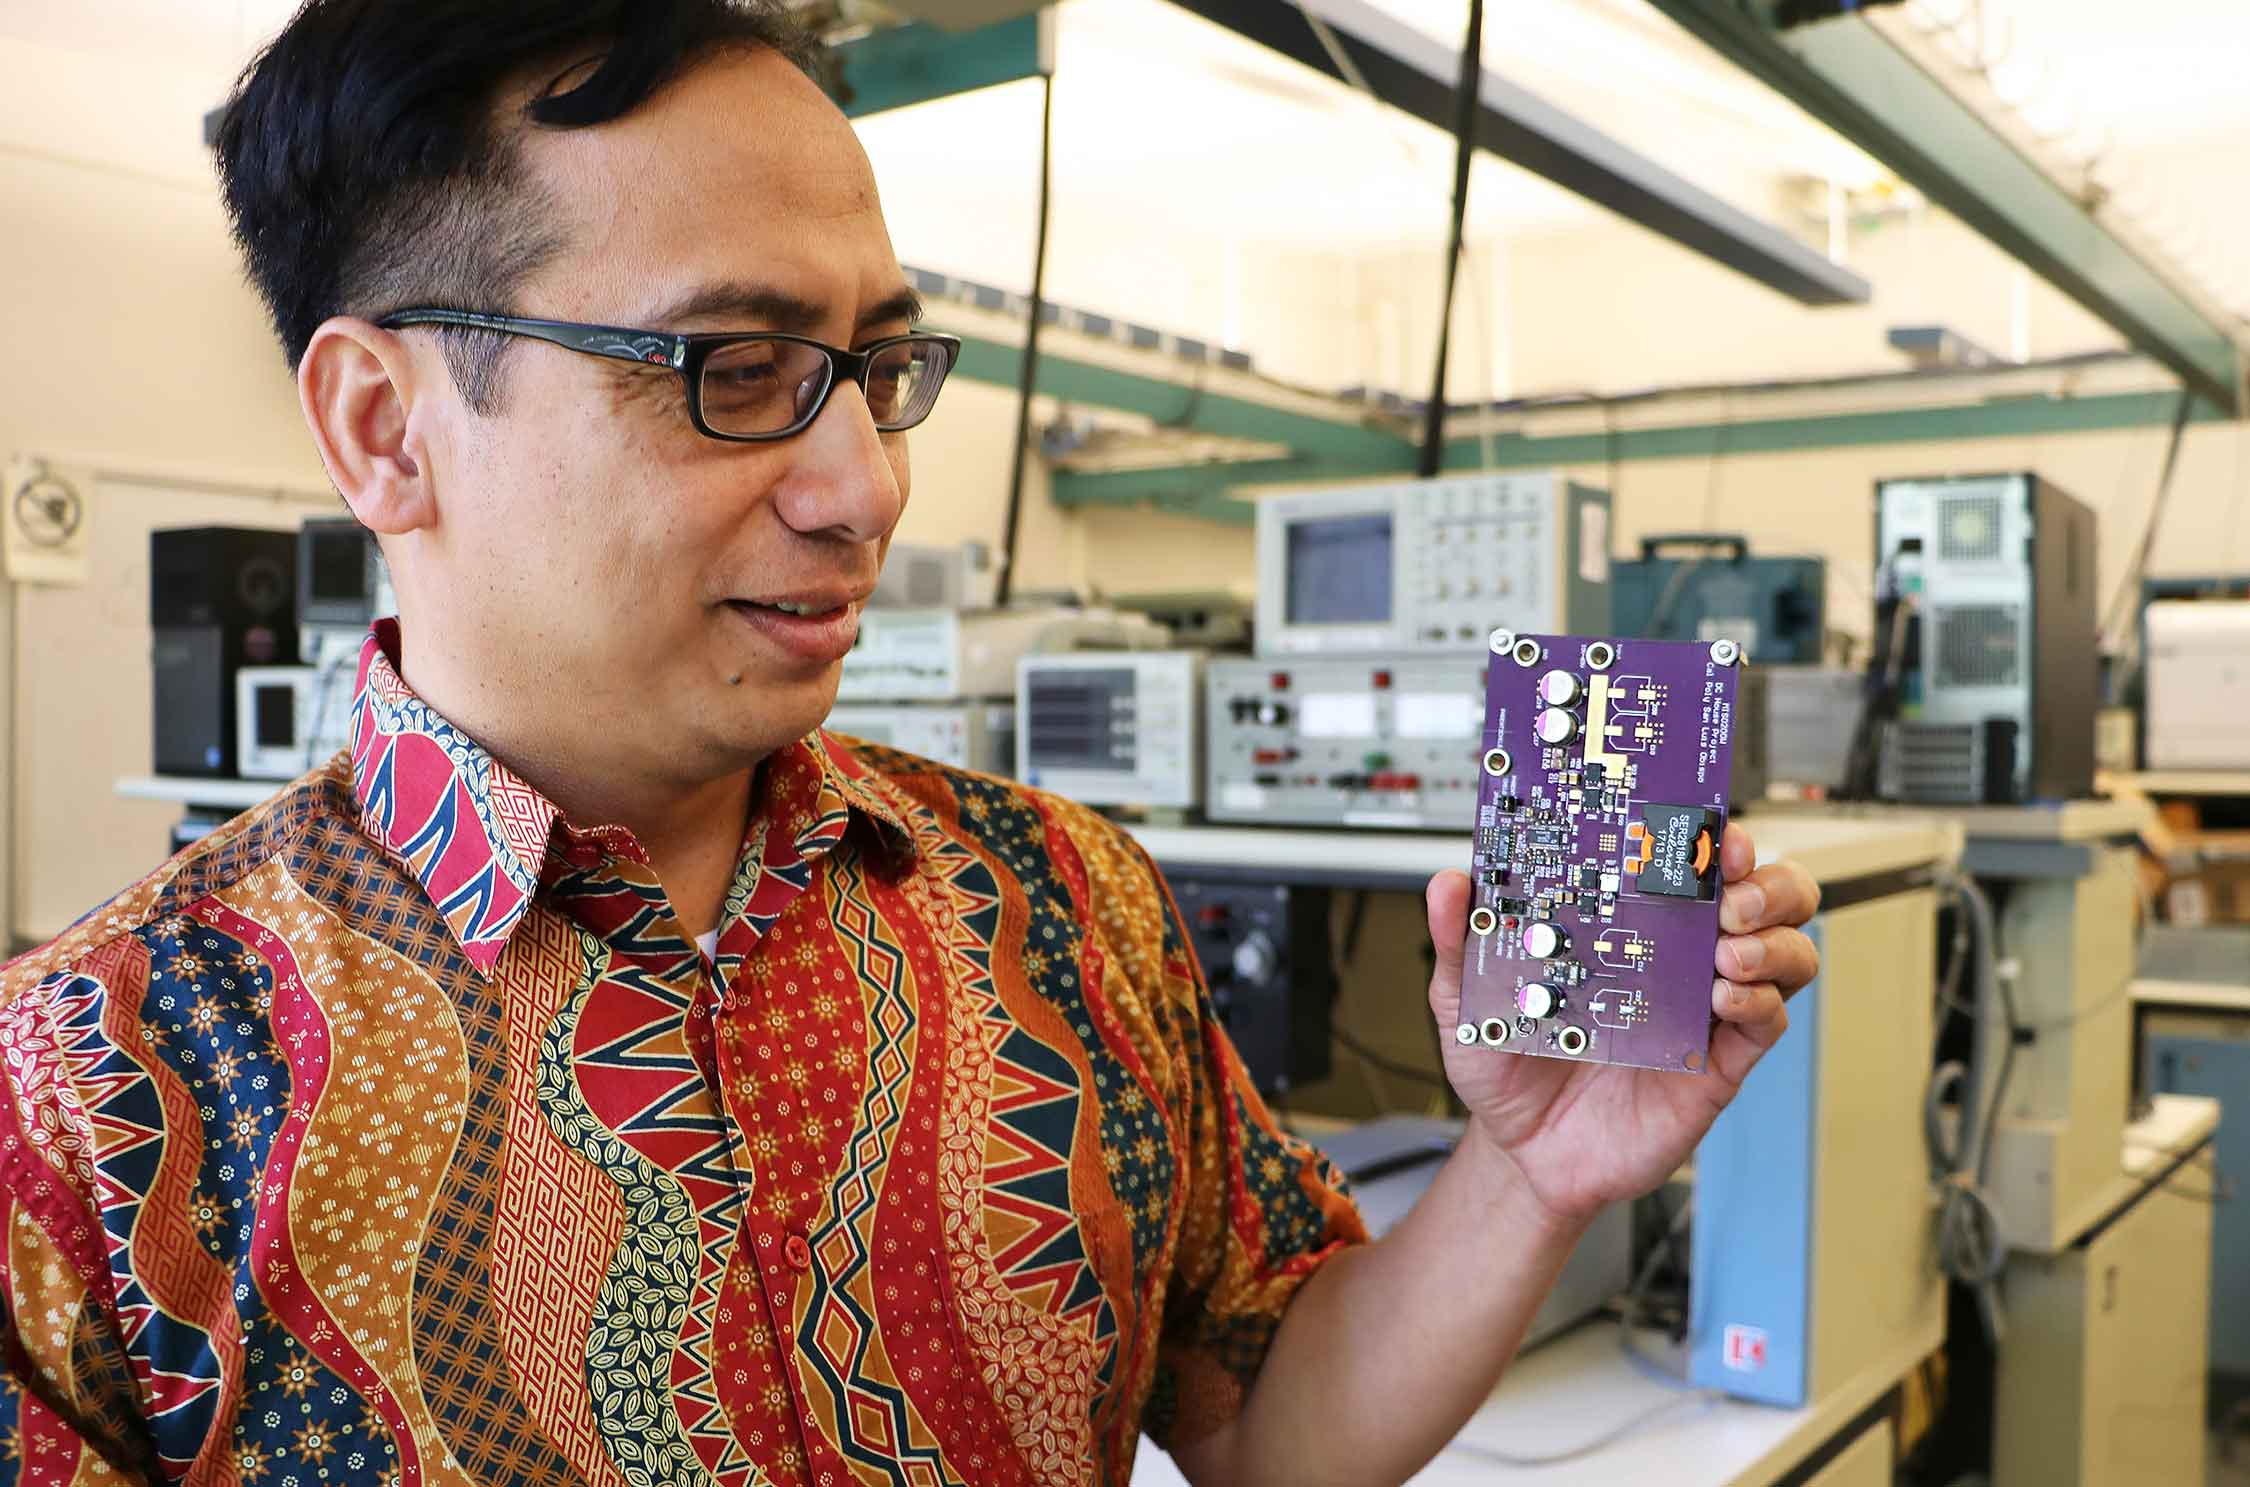 Cal Poly electrical engineering professor Taufik, who uses only one name, holds a prototype of said his soon-to-be patented device that could provide light to the more than 1.6 billion people living far off the grid. The U.S. Patent and Trademark Office has told Taufik that the patent would be awarded this fall.